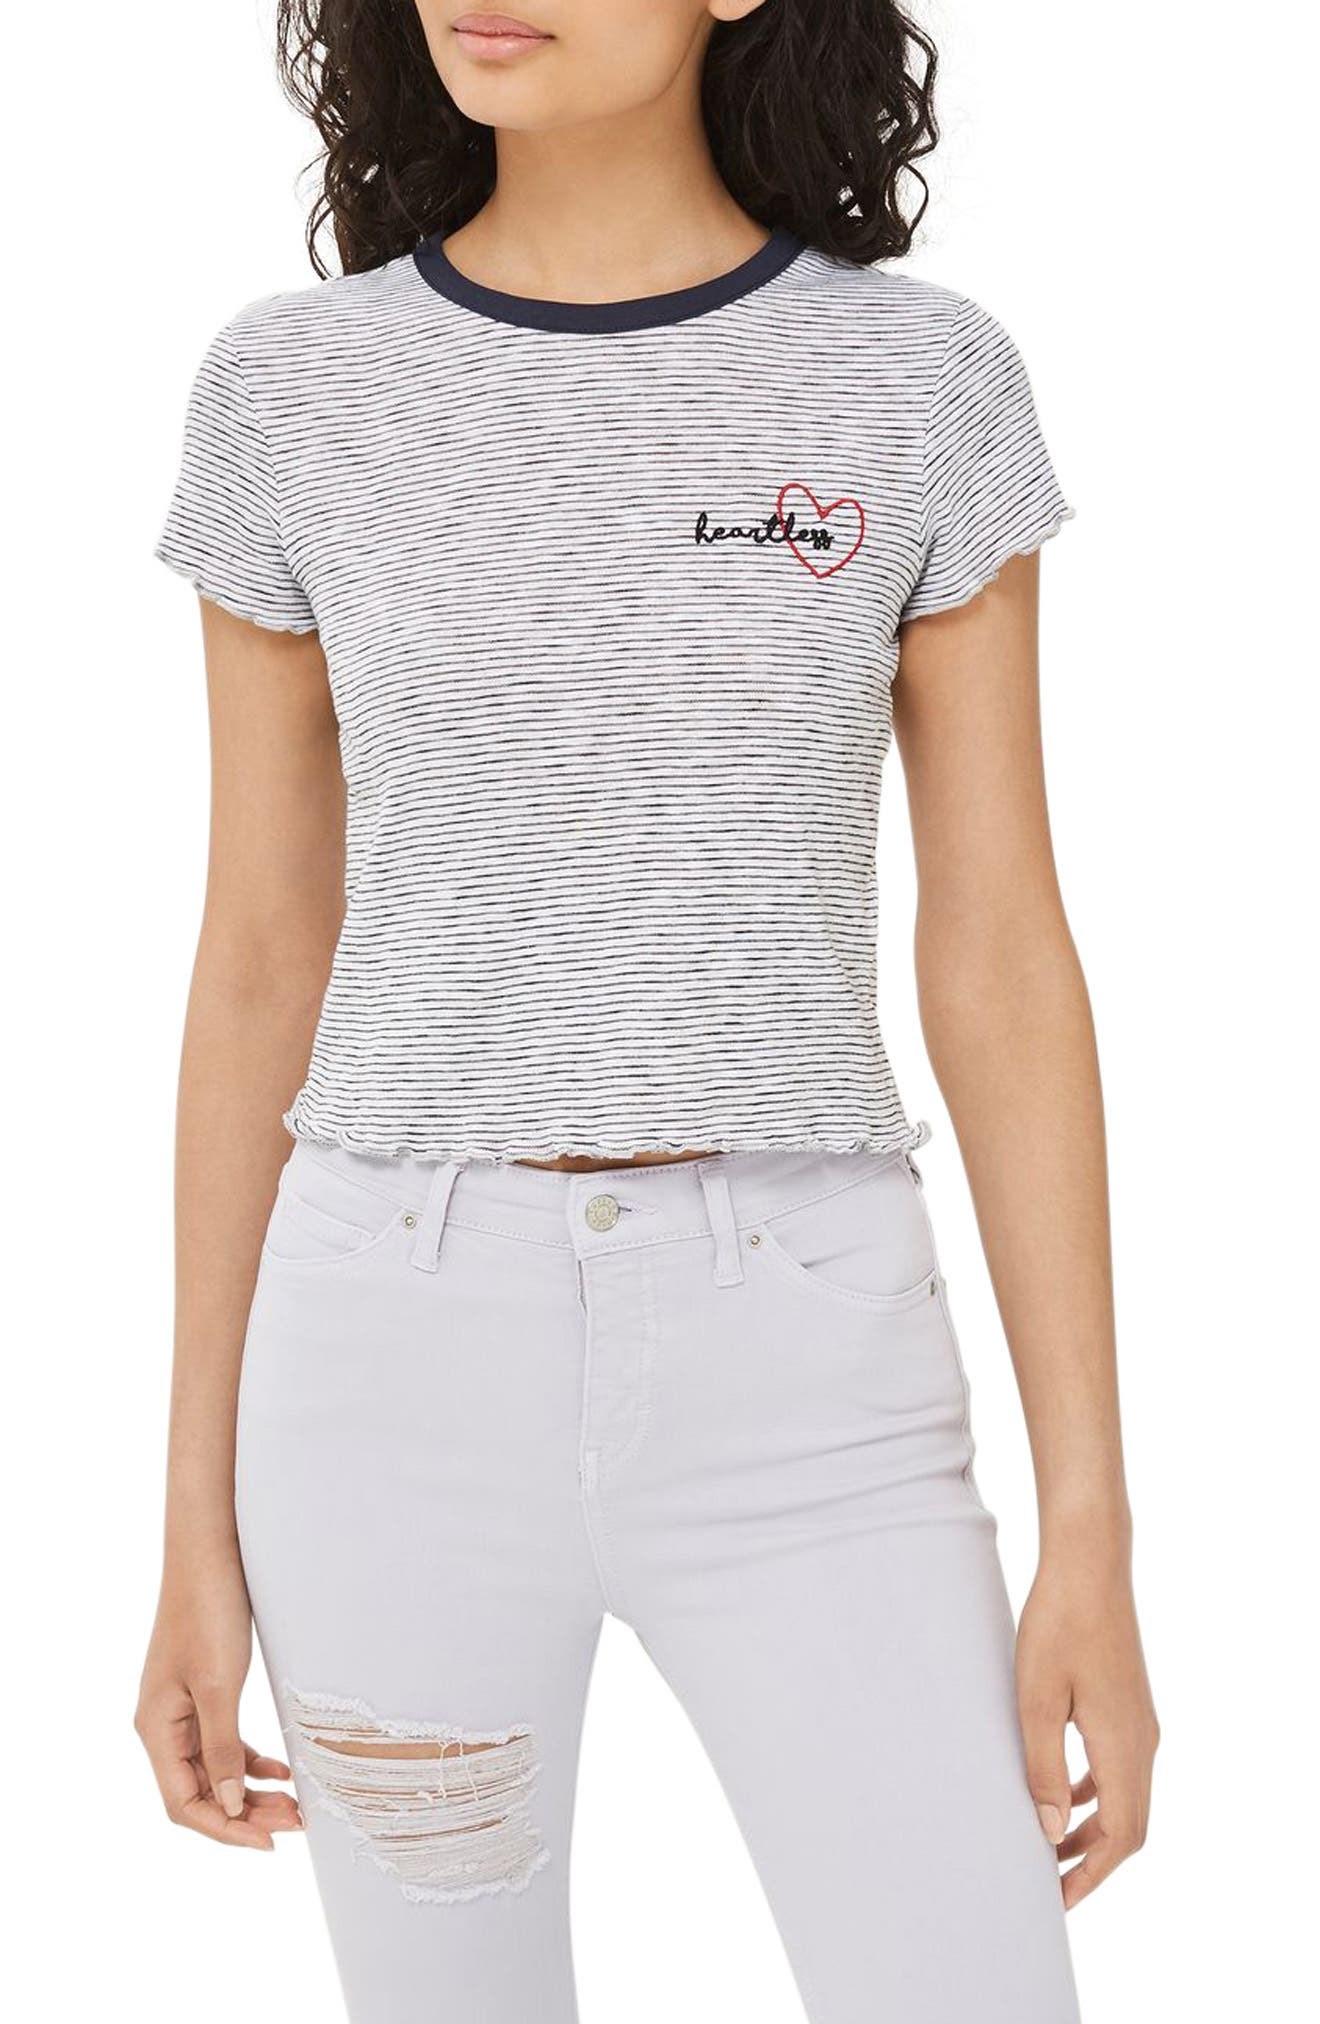 Topshop Heartless Motif Stripe Tee (Petite)